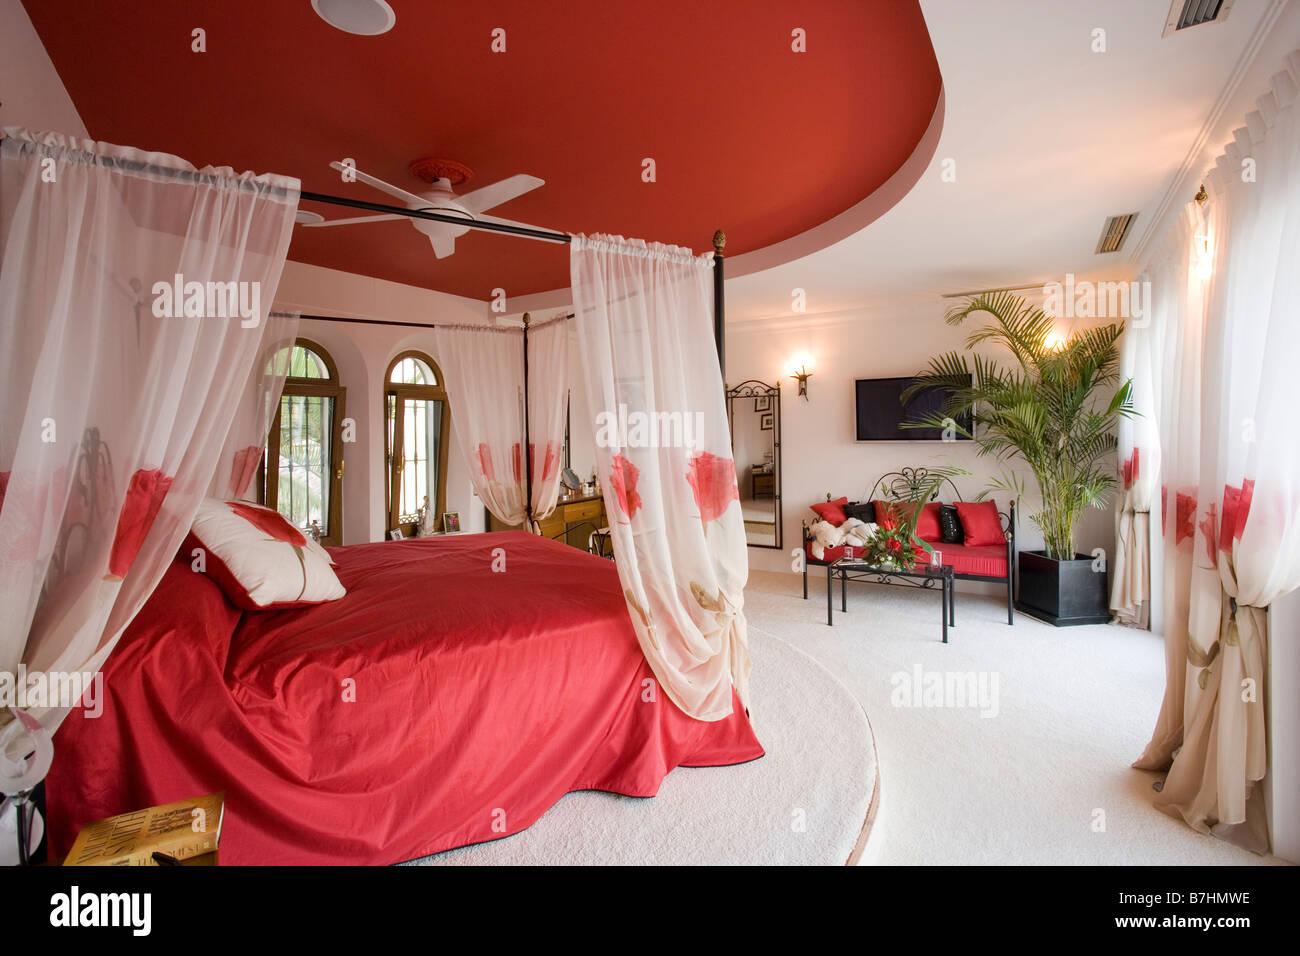 Bedroom ceiling drapes - Red Ceiling Above Bed With White Voile Drapes And Red Bedlinen In Bedroom With White Carpet